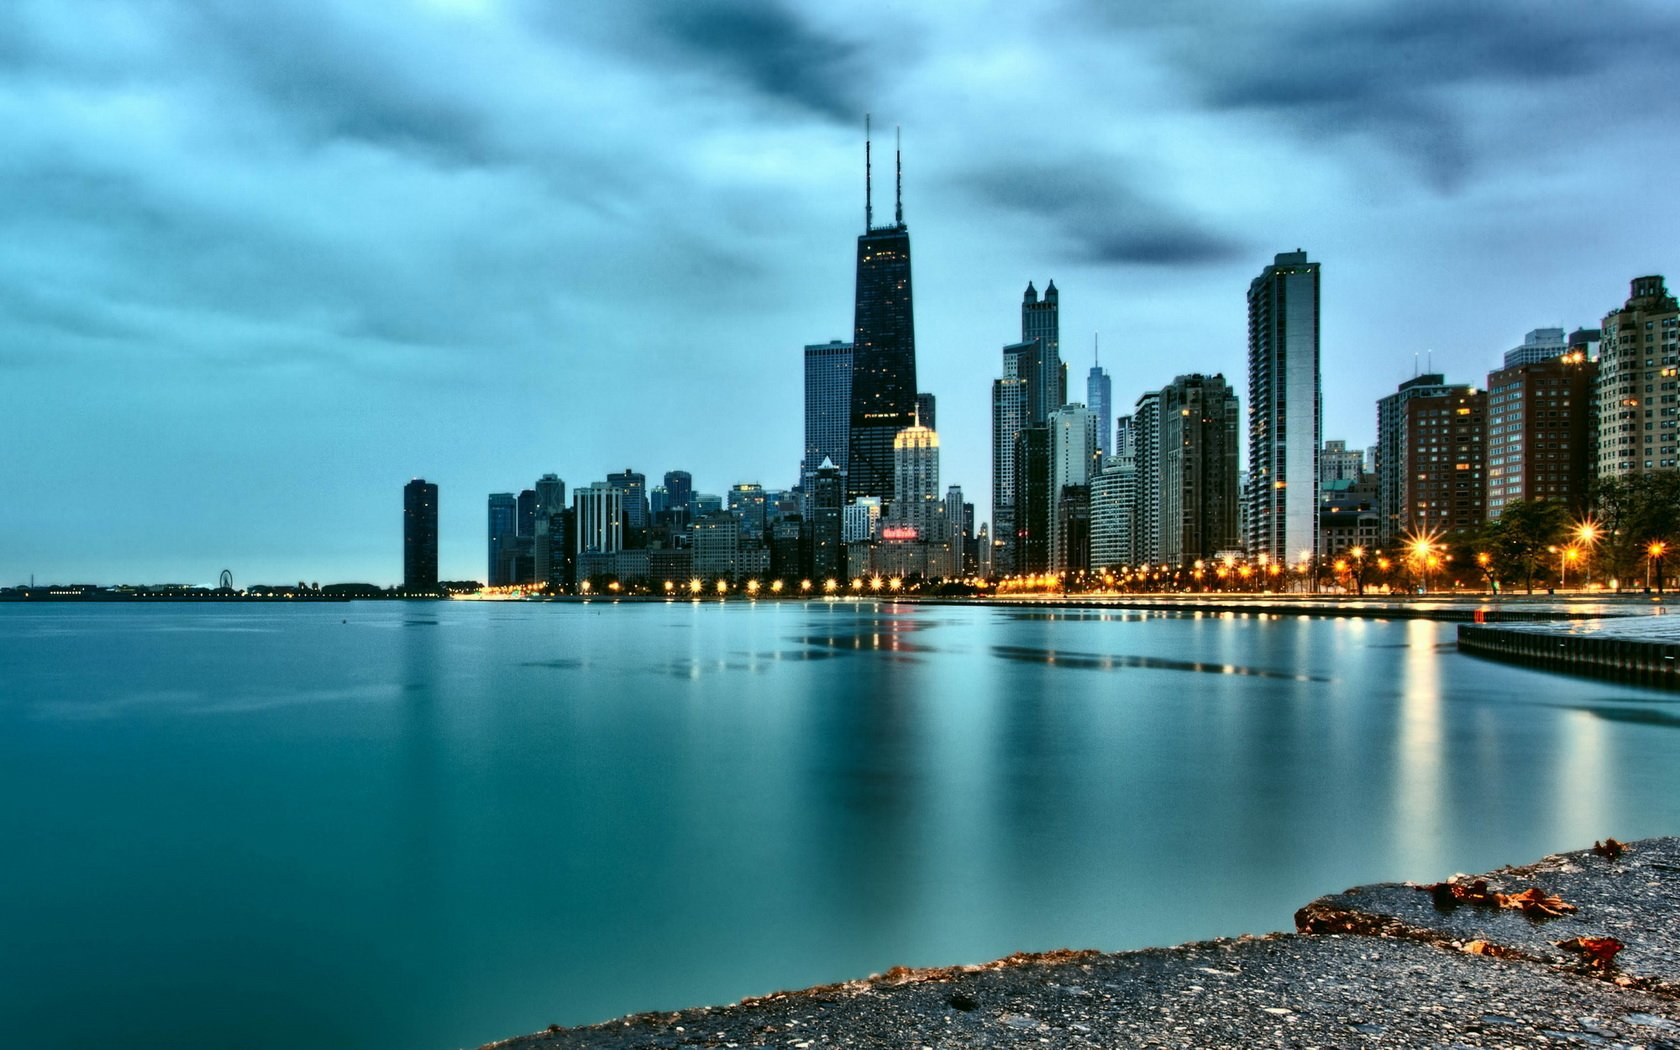 Chicago wallpaper and background image 1680x1050 id 386859 - Chicago skyline wallpaper 1920x1080 ...